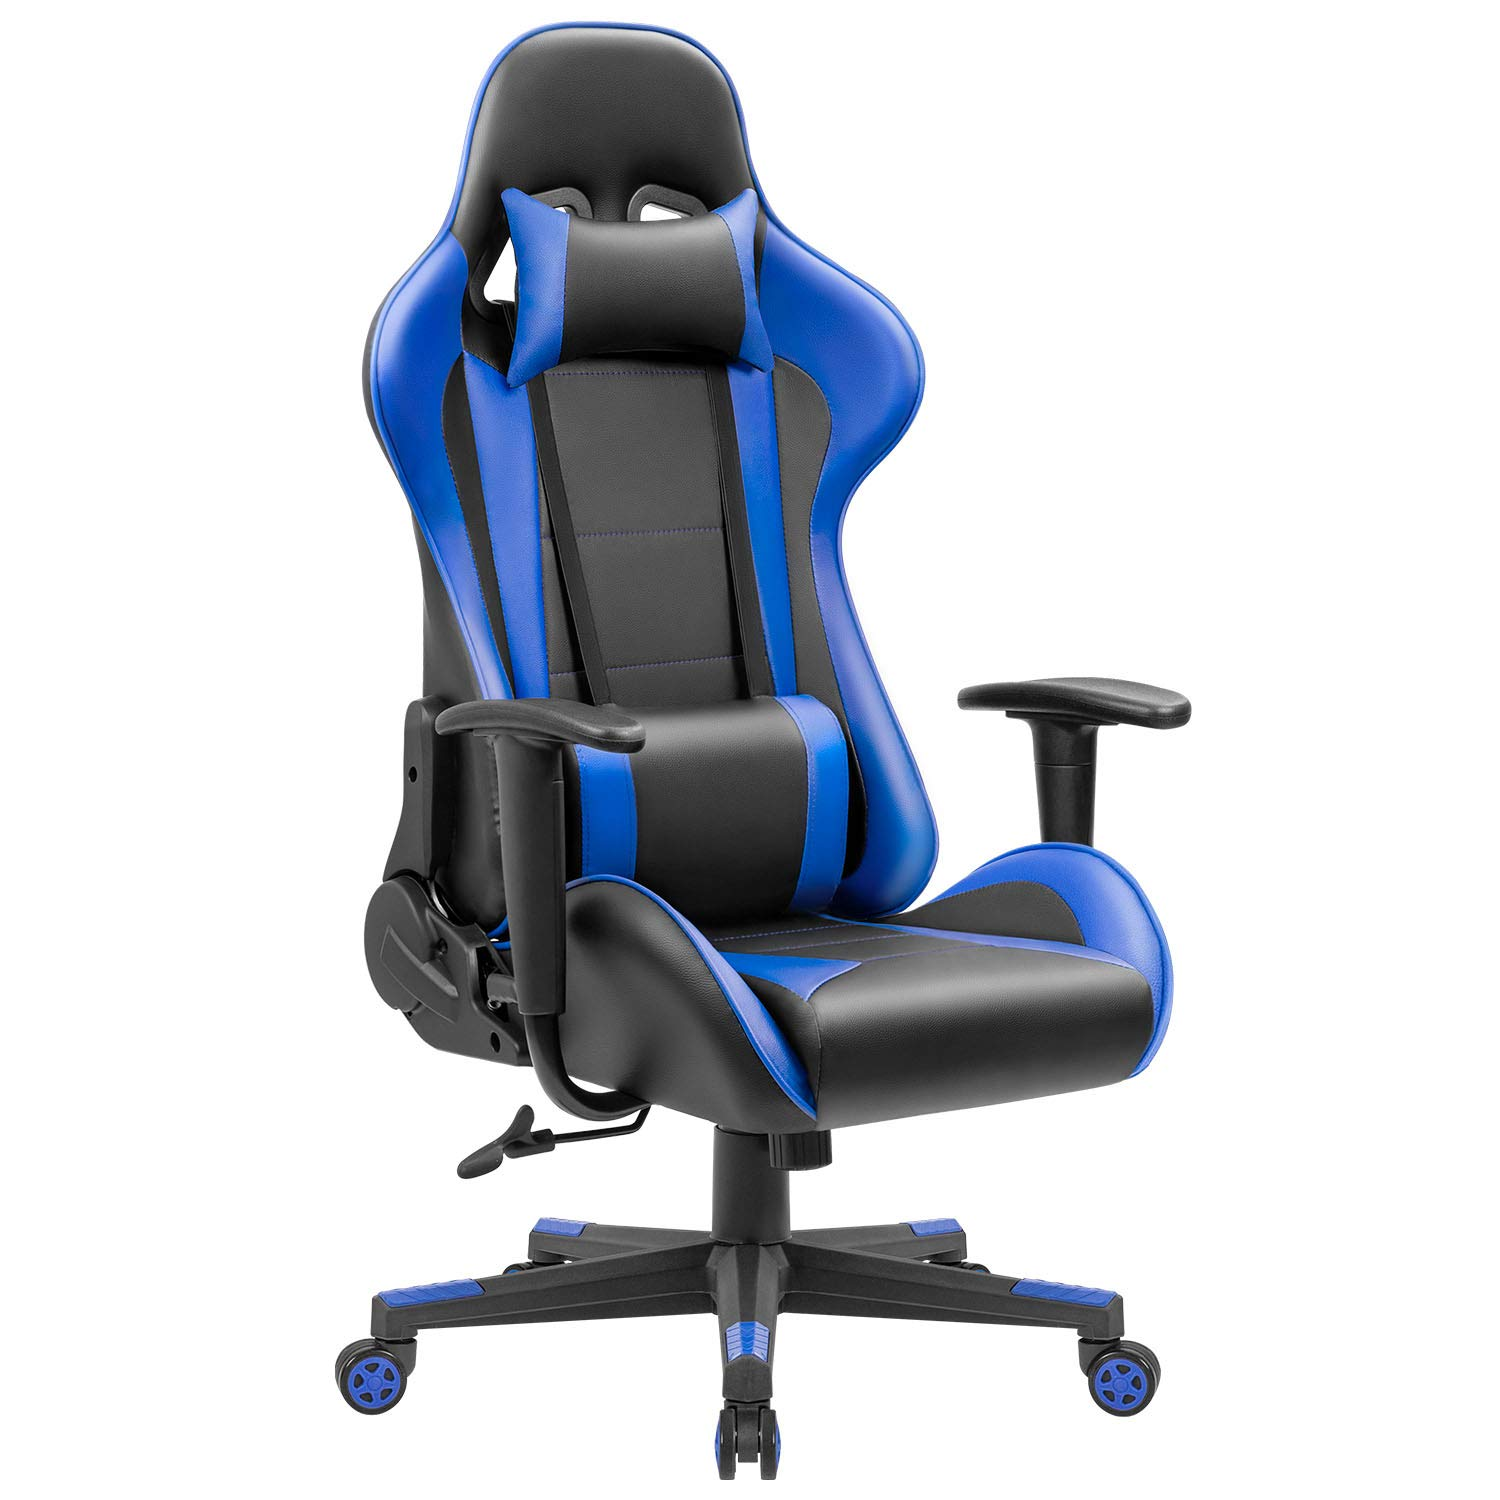 JUMMICO Ergonomic Gaming Chair High Back Racing Computer Chair Adjustable Leather Swivel Executive Office Desk Chair with Headrest and Lumbar Support (Blue)